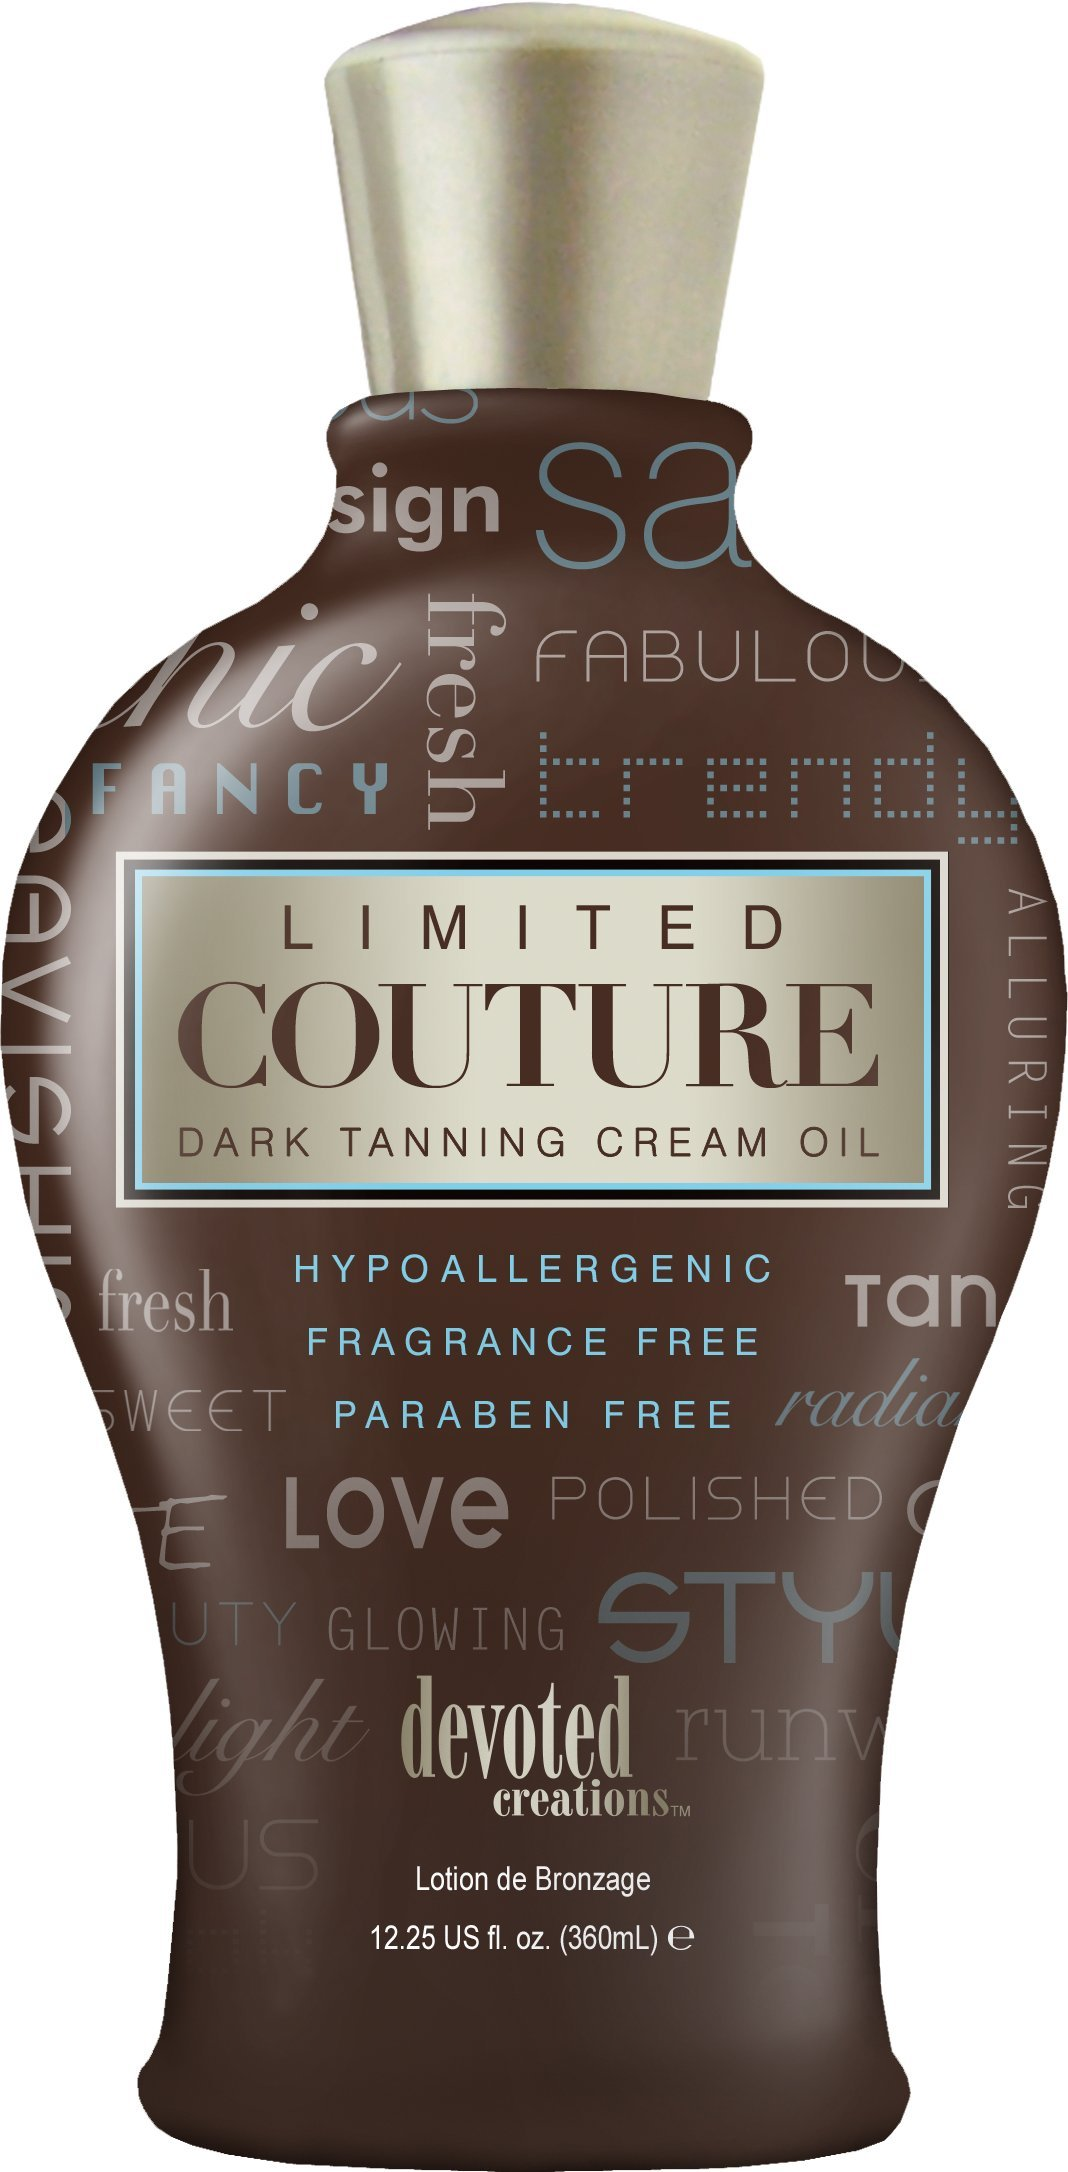 Devoted Creations Limited Couture Hypoallergenic